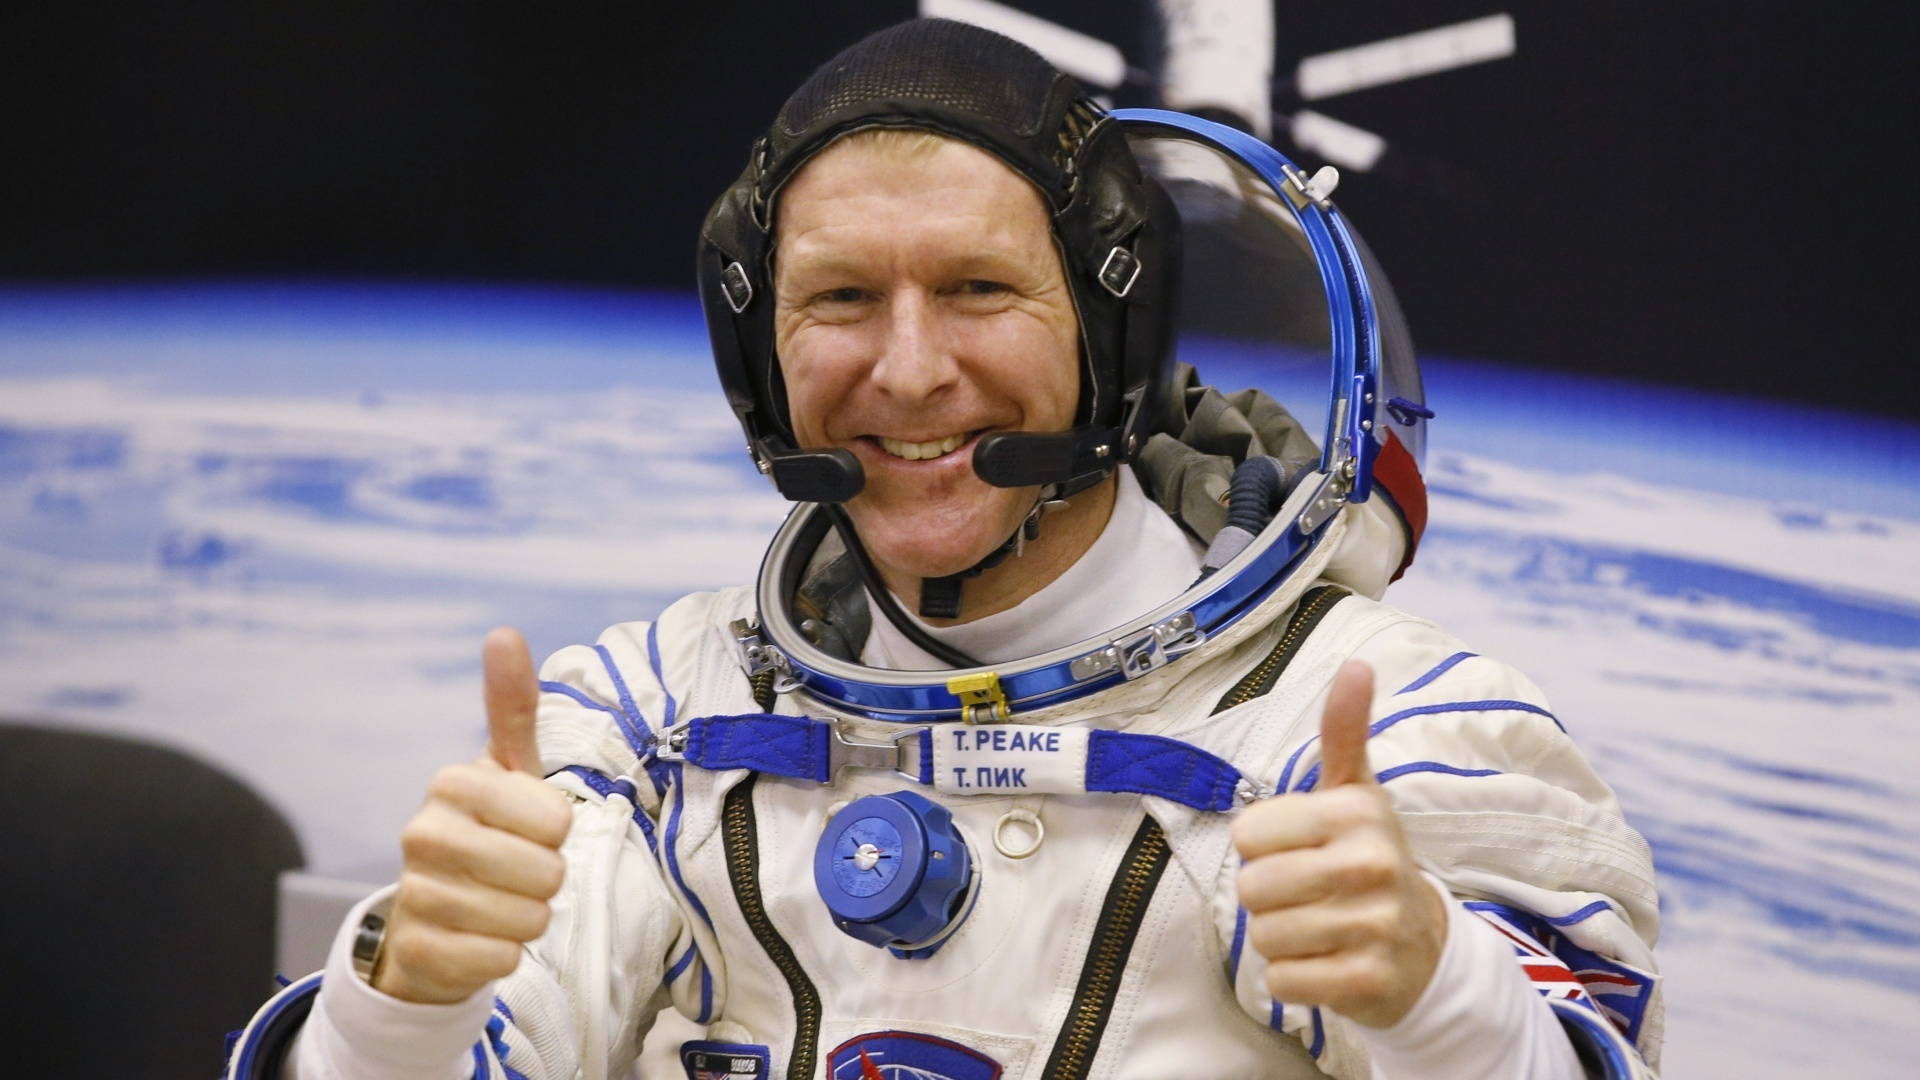 British astronaut Tim Peake gives a thumbs up